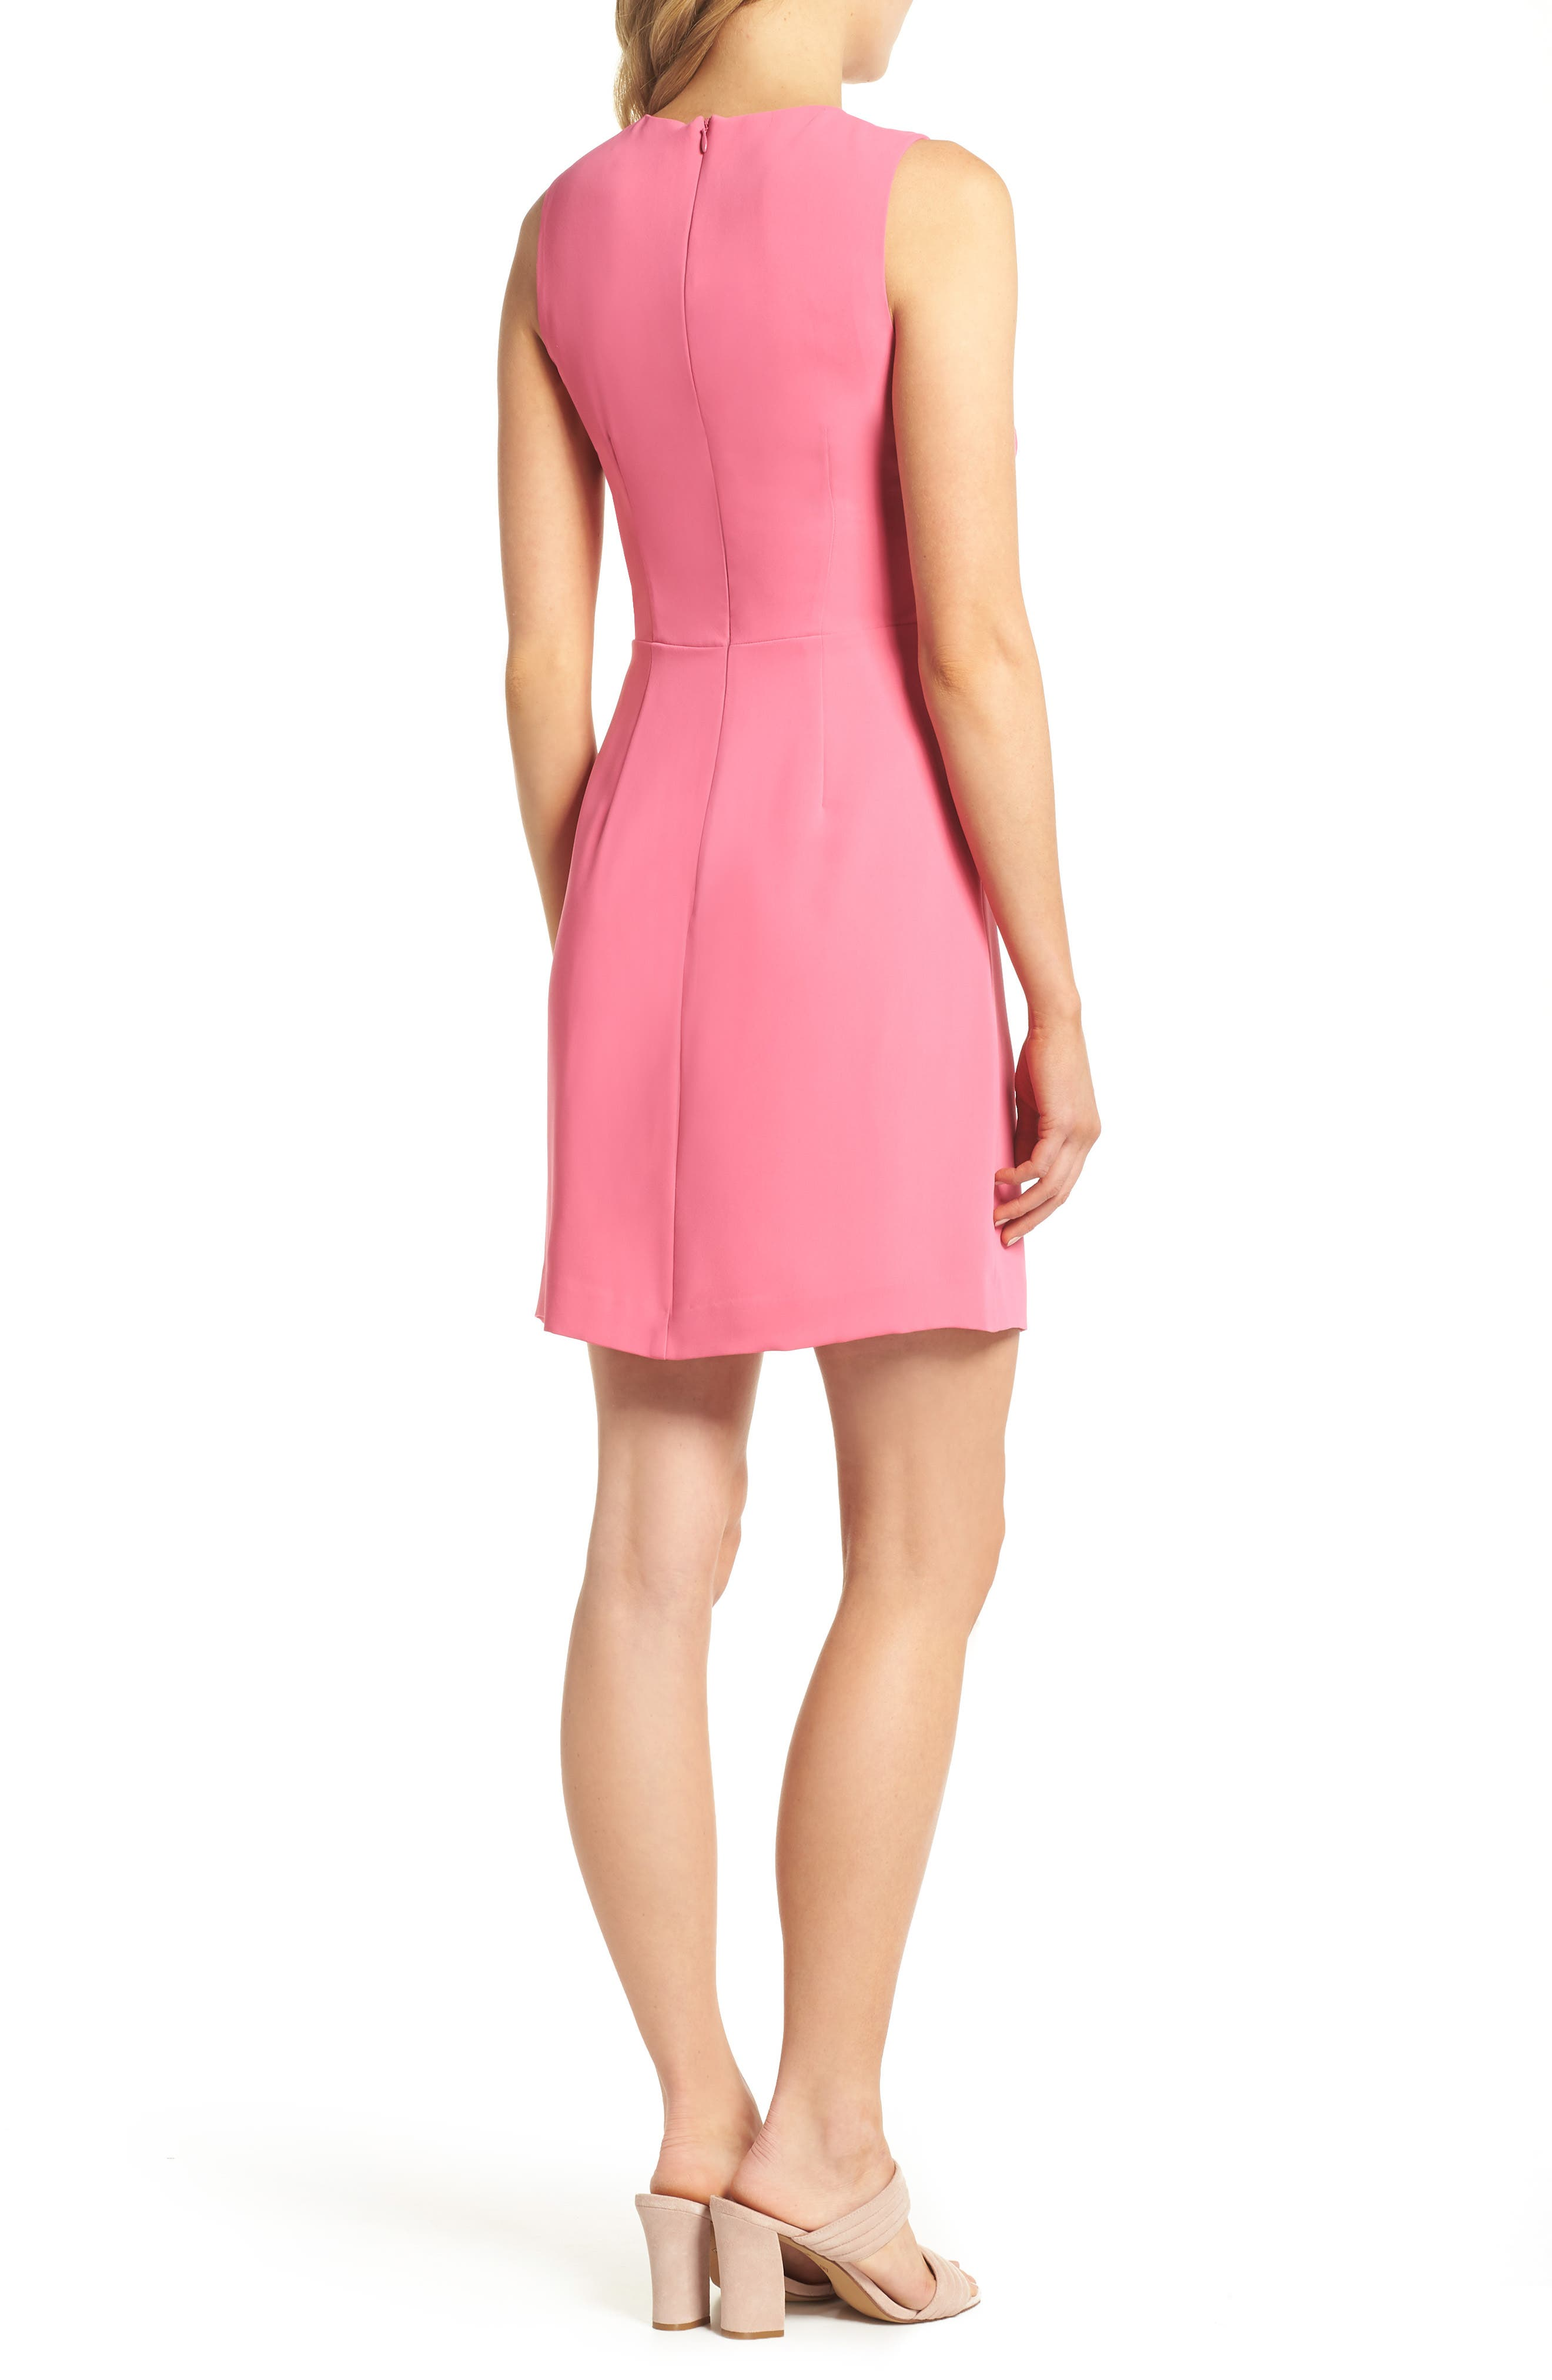 Nera Sheath Dress,                             Alternate thumbnail 2, color,                             650